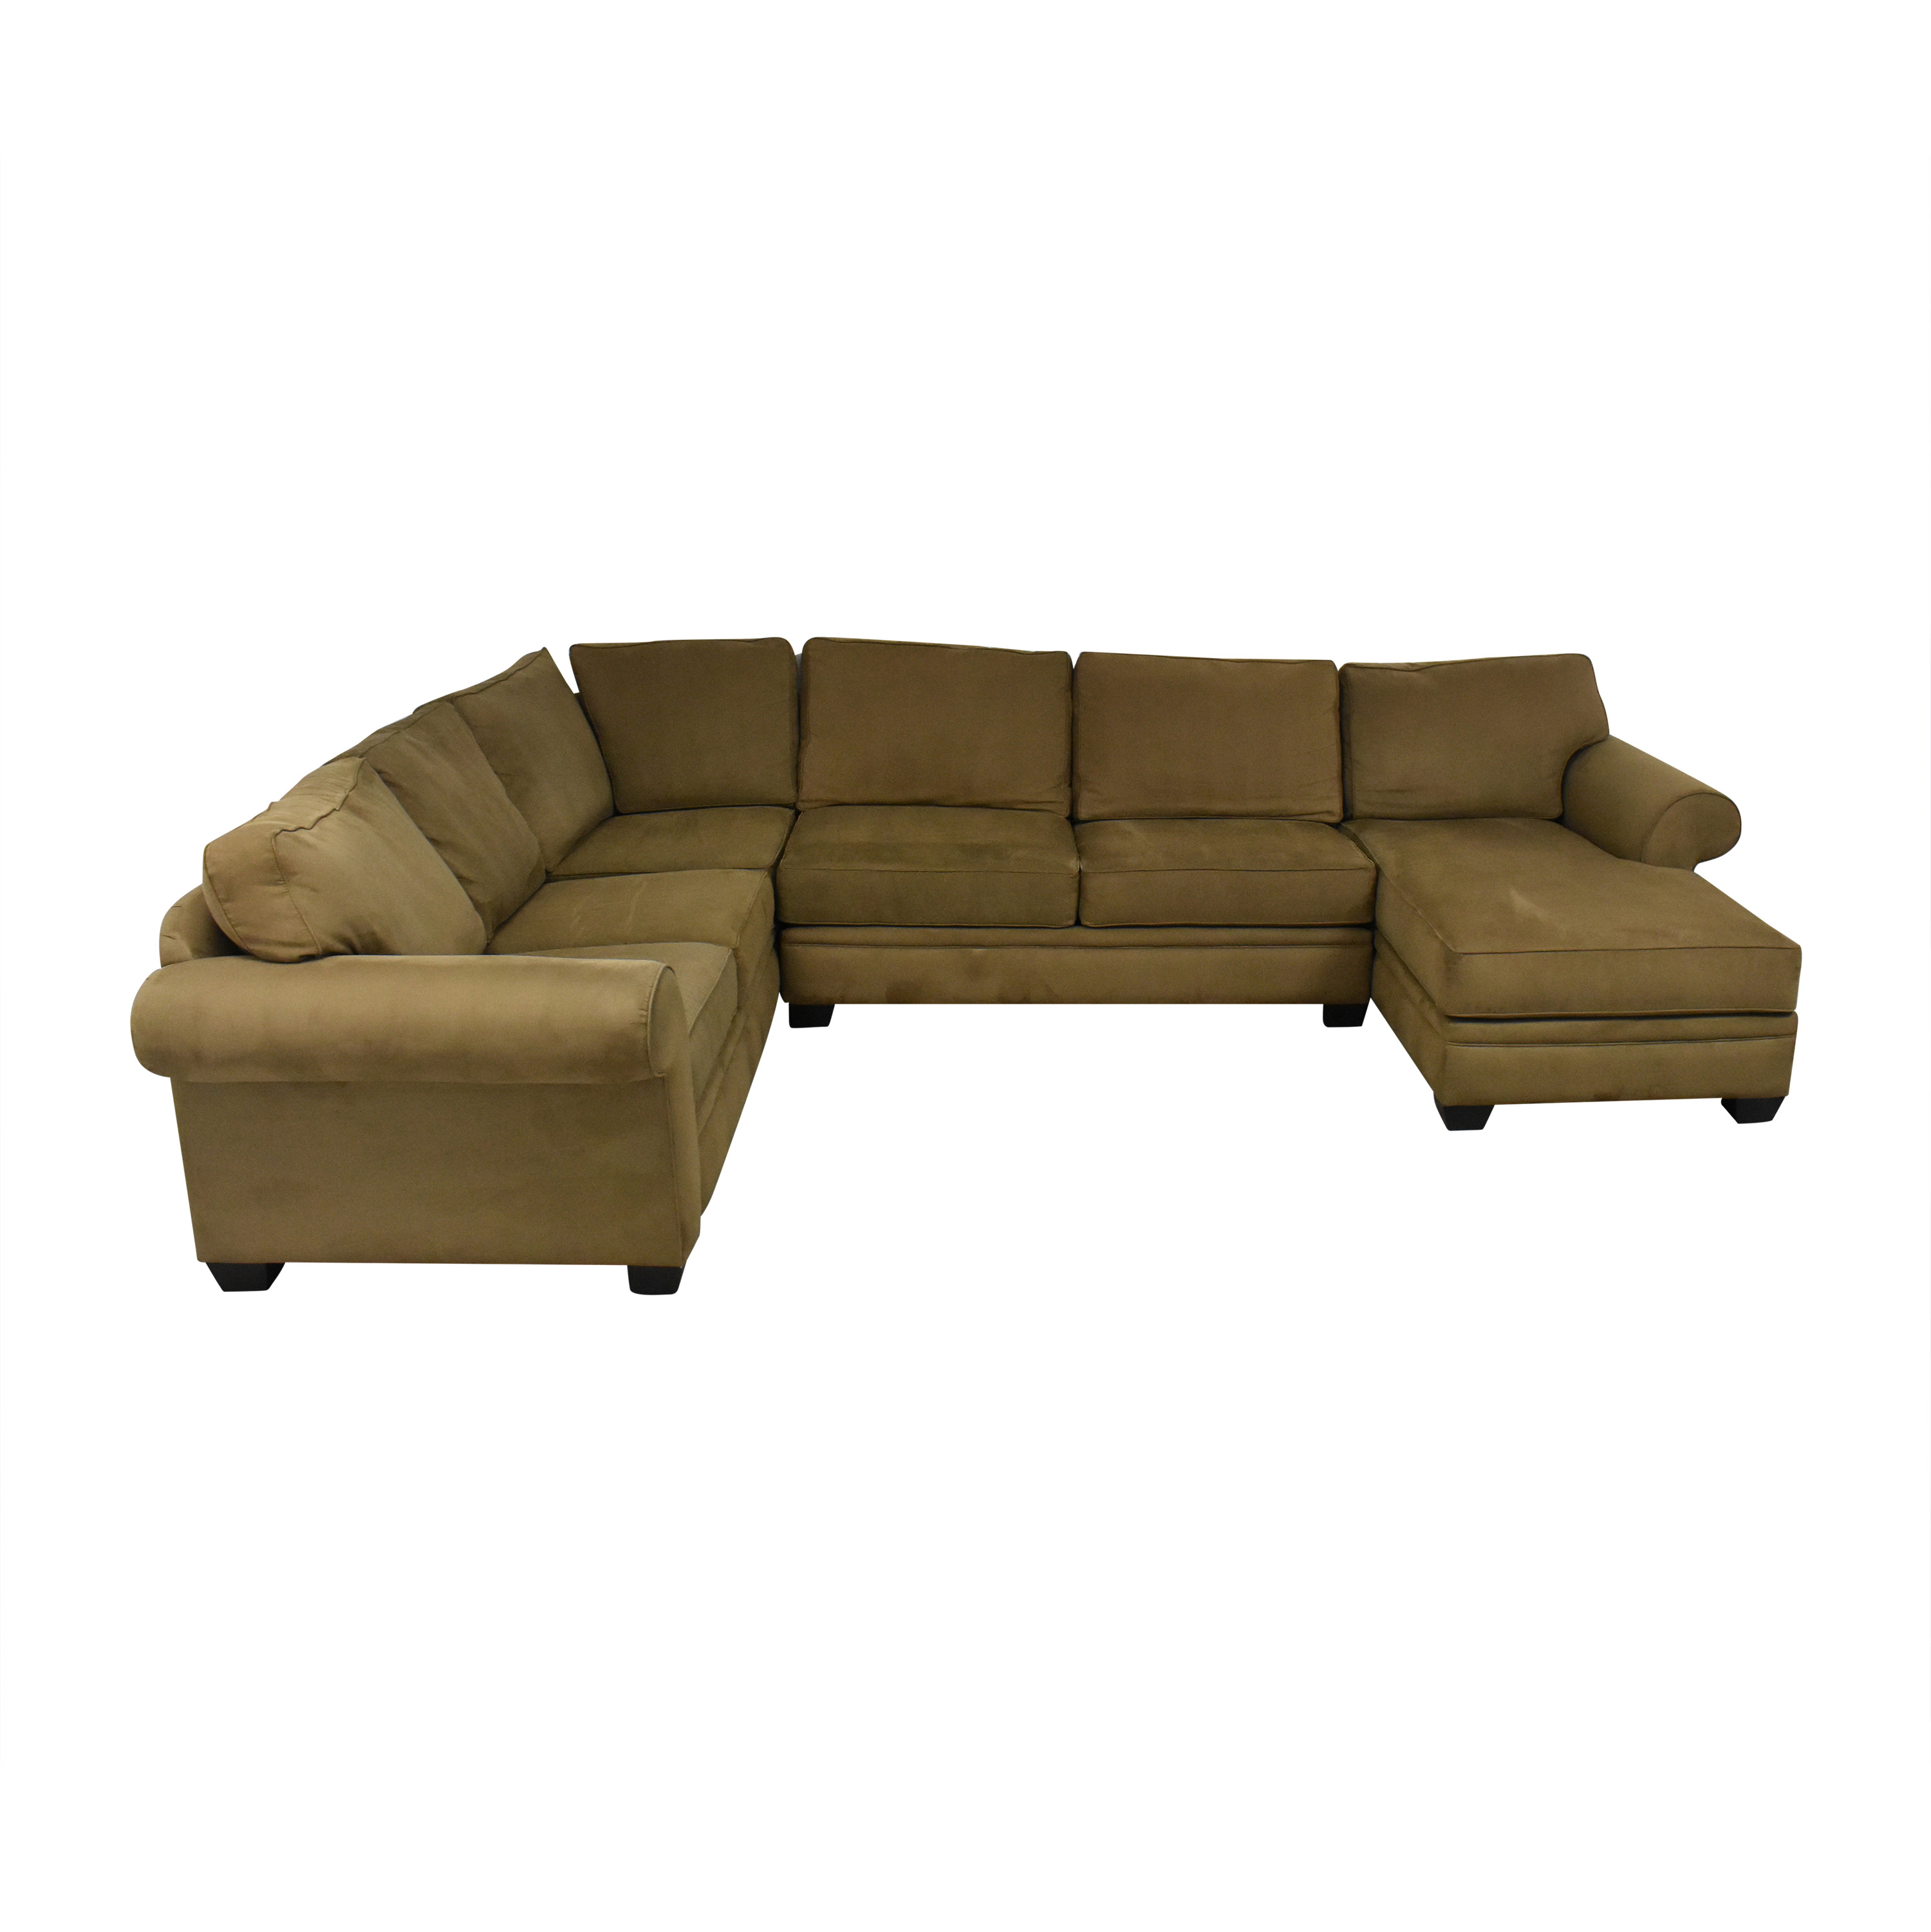 Macy's Macy's Corner Sectional Sofa with Chaise dimensions